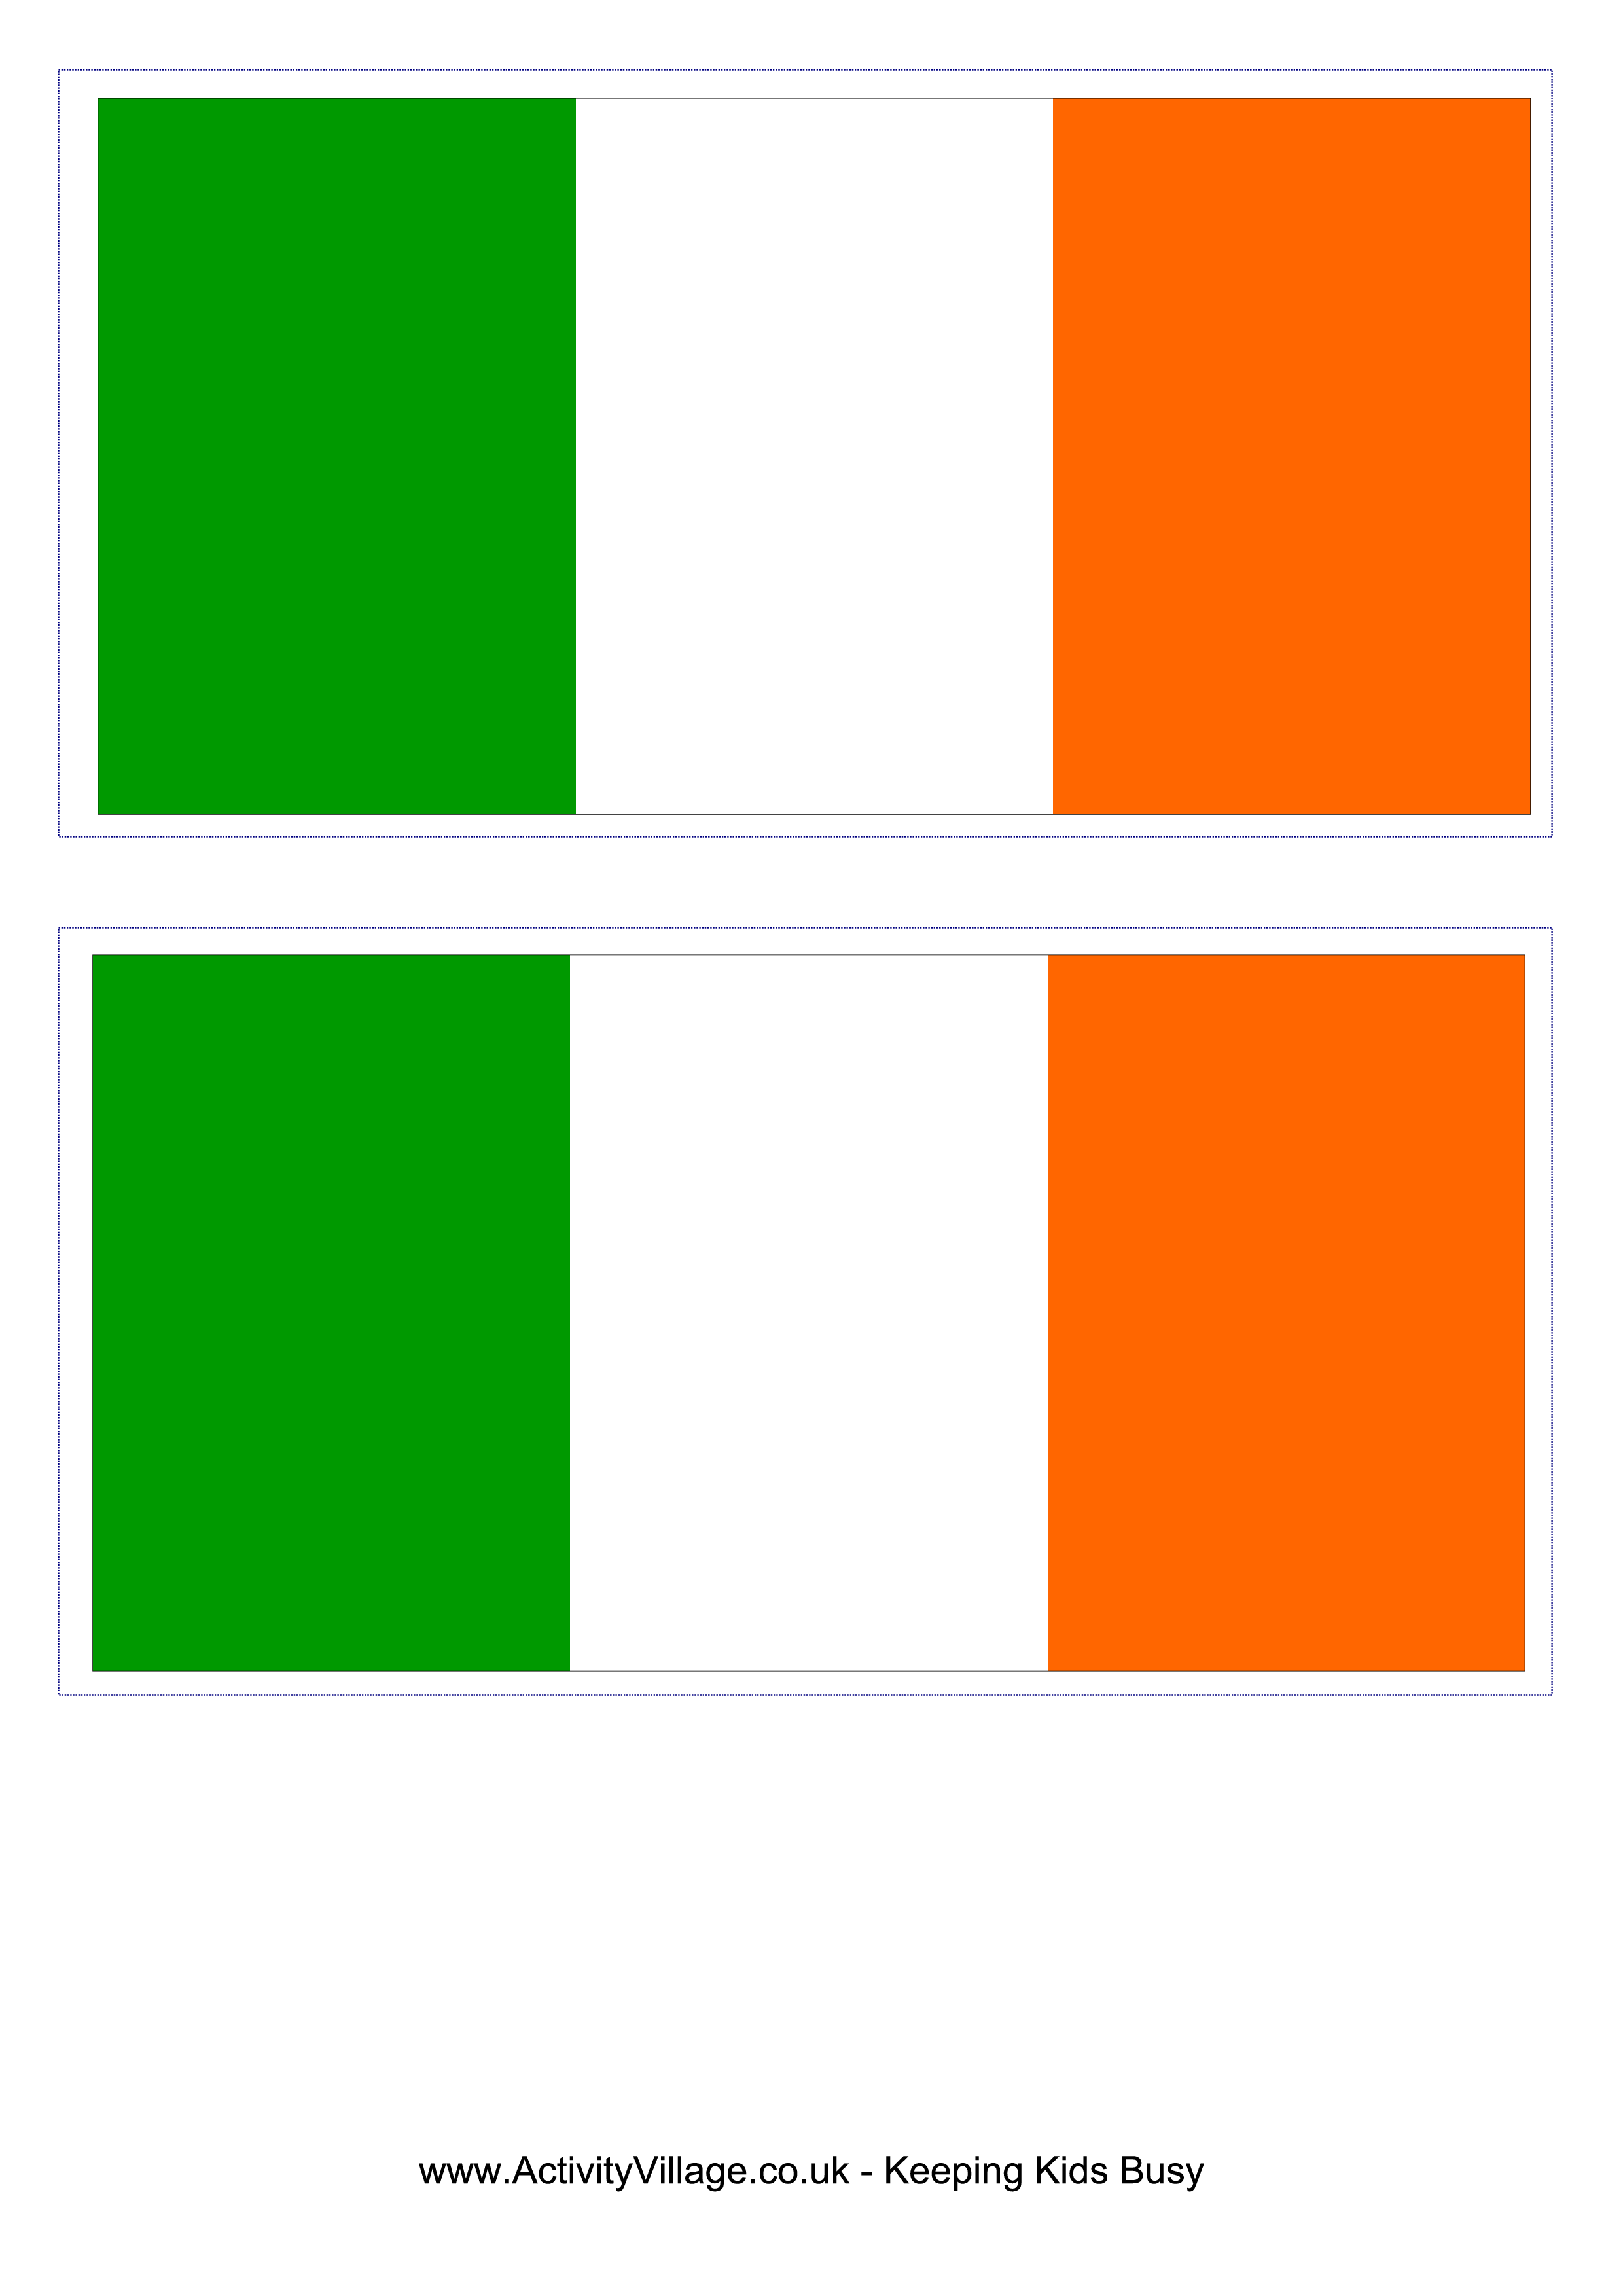 Download This Free Printable Irish Template A4 Flag A5 Flag 8 And 21 Flags On One A4page Easy To Use In Your O Irish Flag Flag Template Free Flag Printables